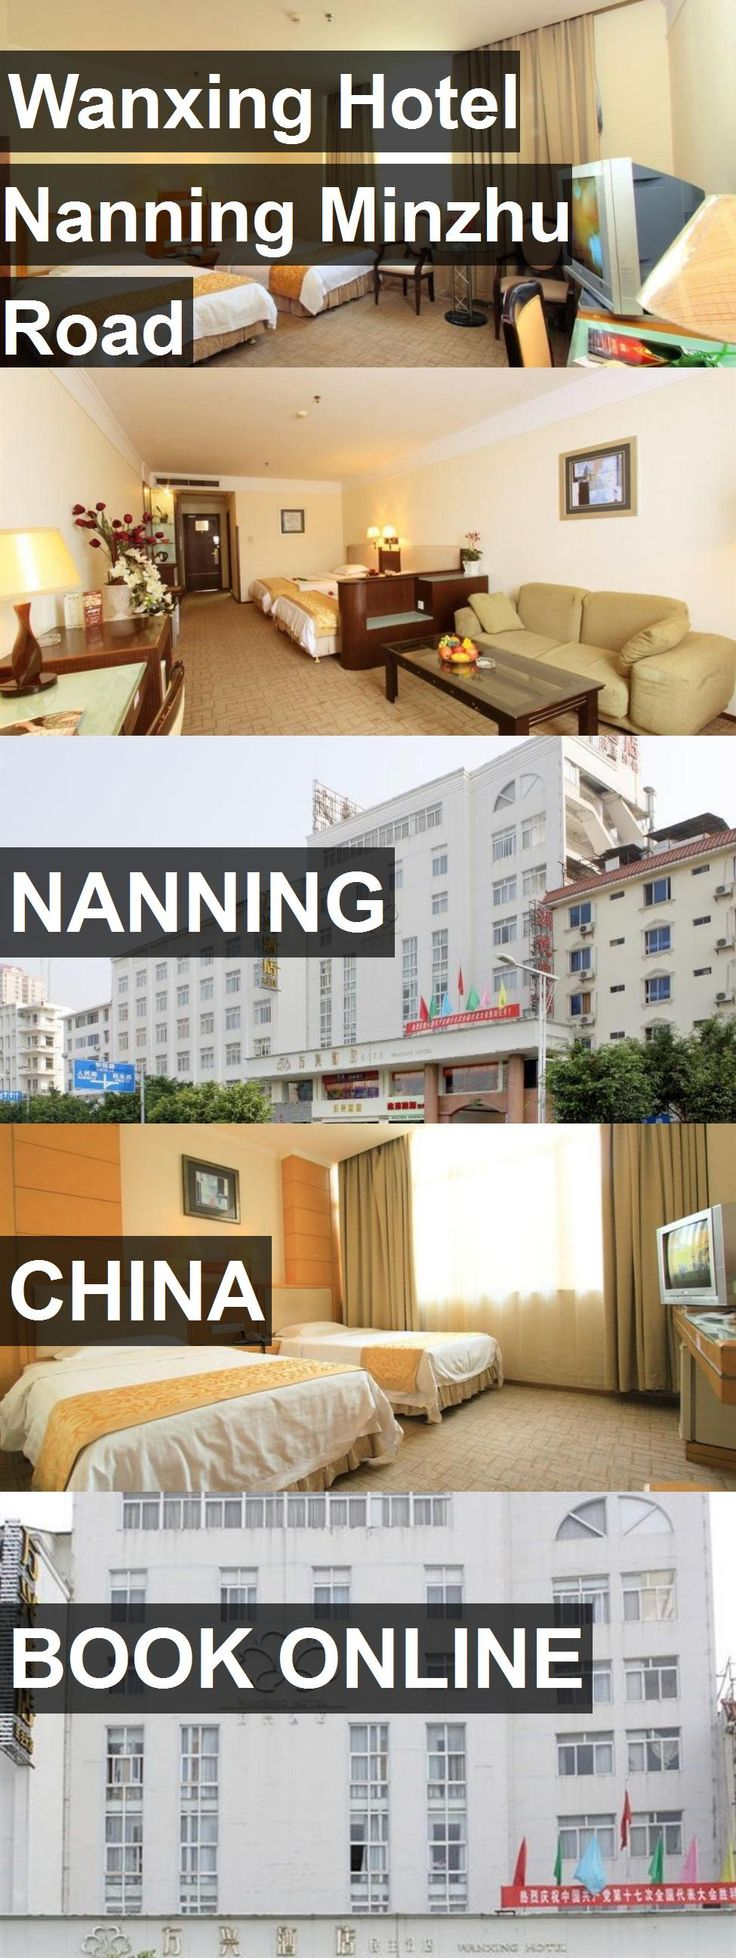 Hotel Wanxing Hotel Nanning Minzhu Road in Nanning, China. For more information, photos, reviews and best prices please follow the link. #China #Nanning #hotel #travel #vacation